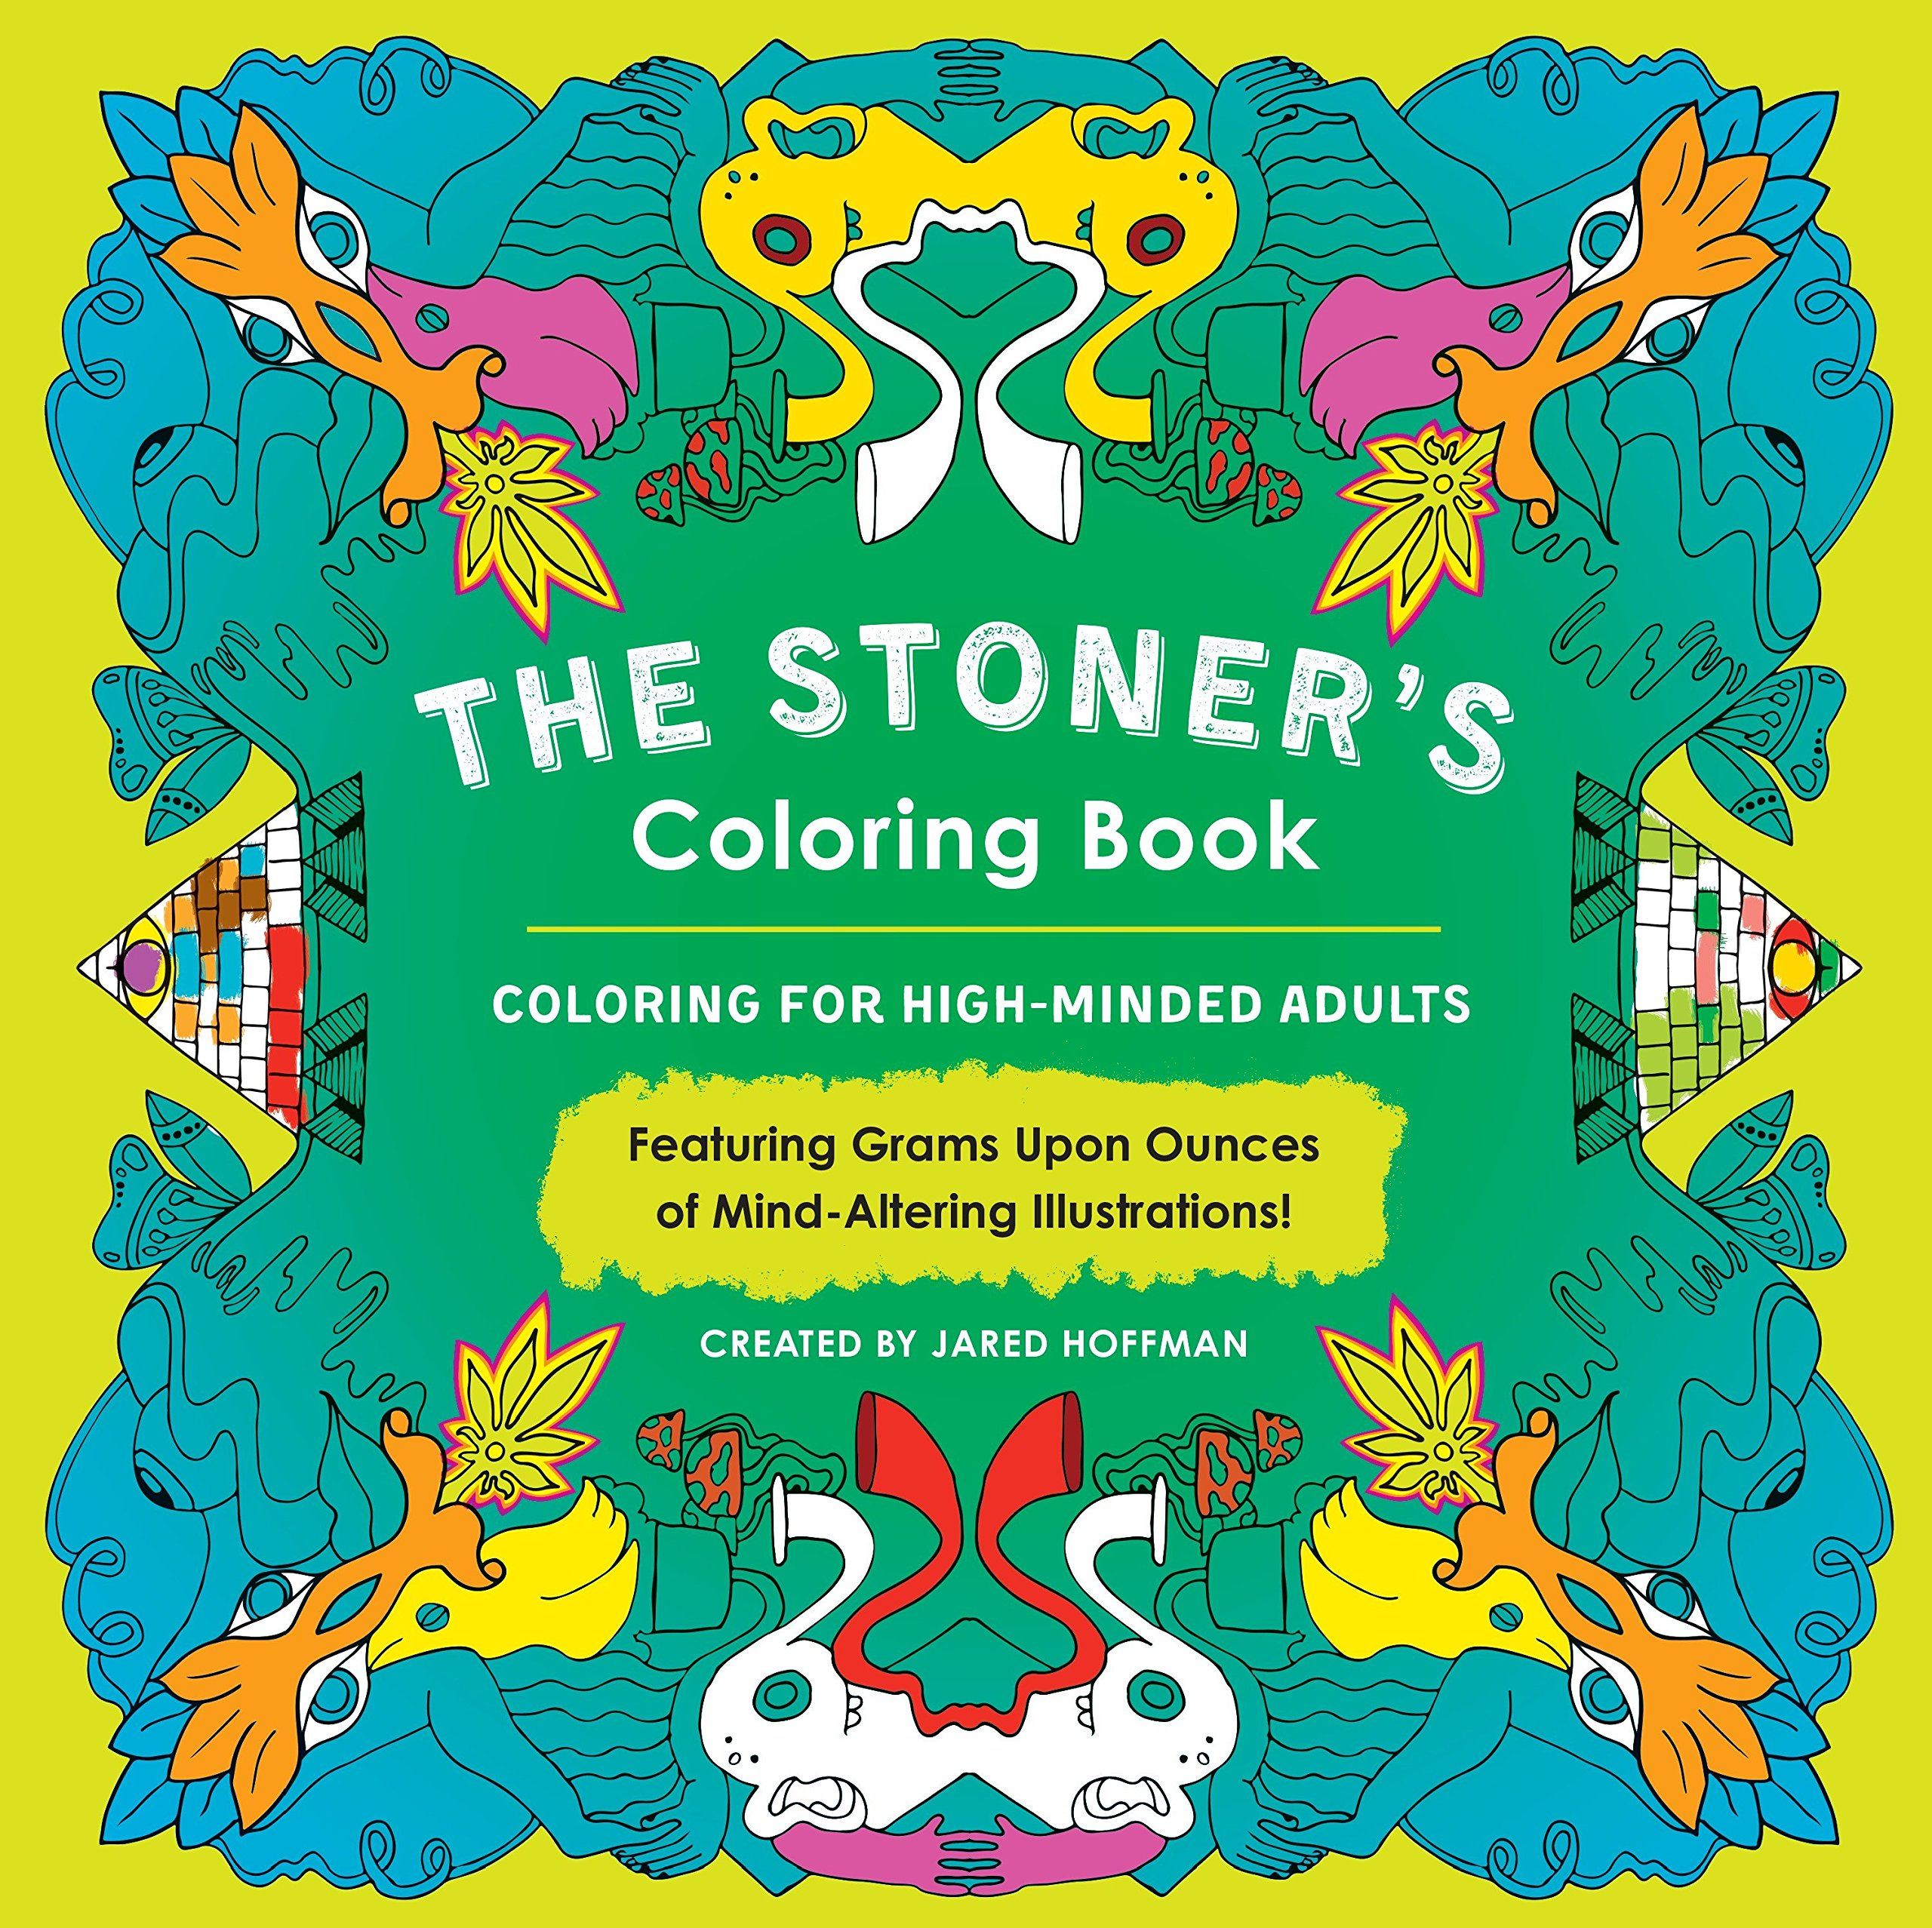 - Amazon.com: The Stoner's Coloring Book: Coloring For High-Minded